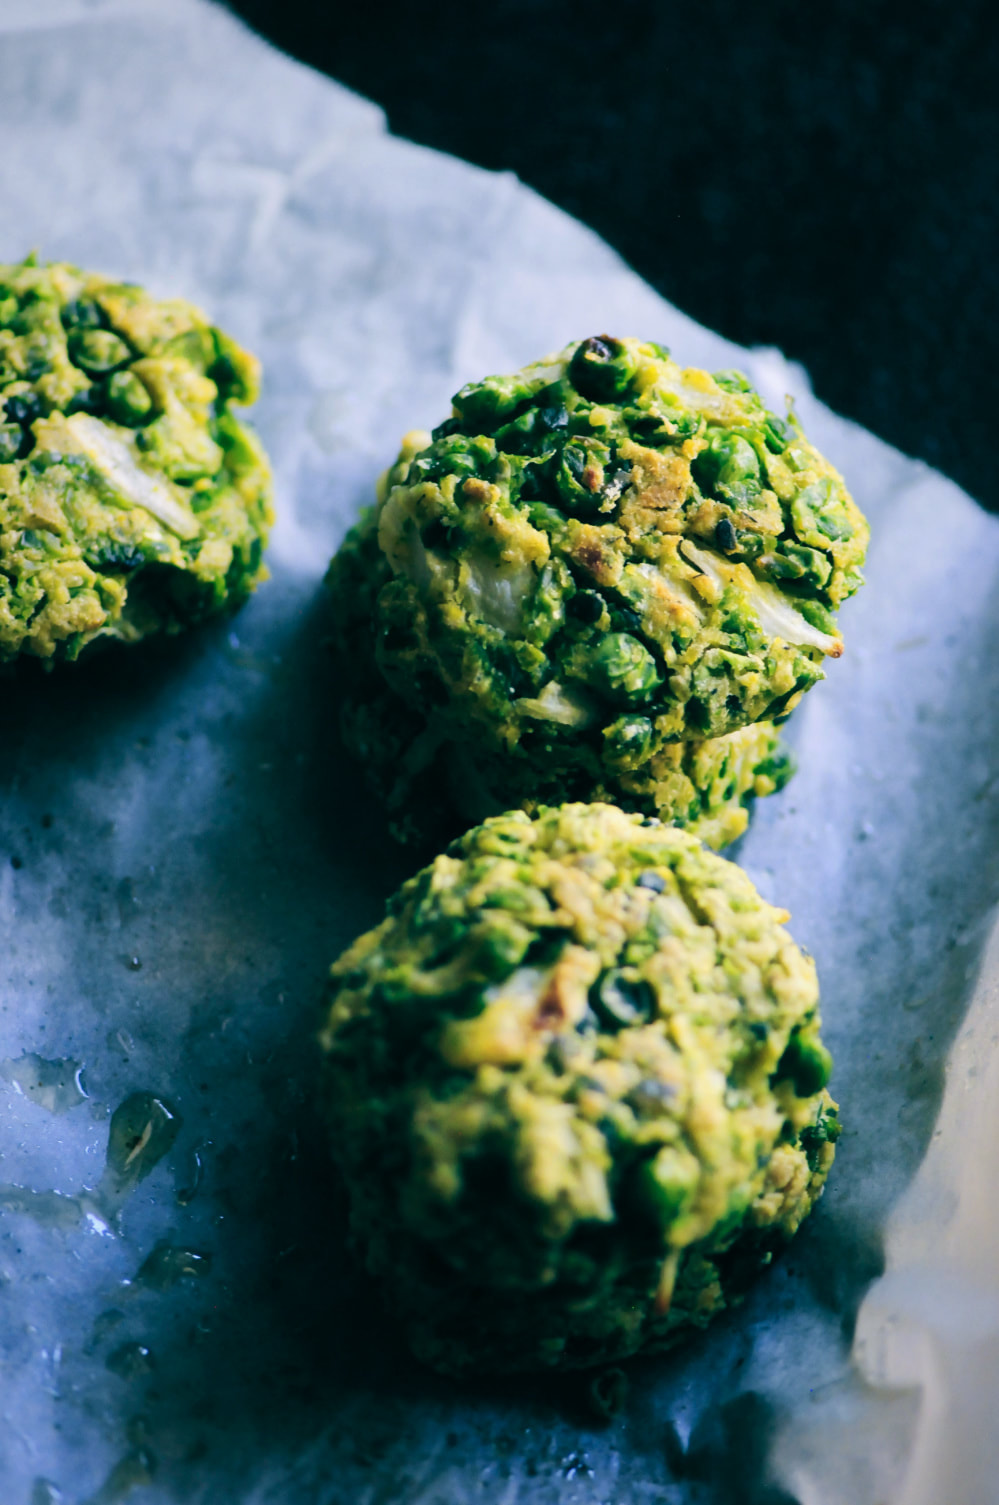 These easy, healthy, and delicious Baked Spring Pea and Dill Fritters with Lemon Tahini Sauce make a great gluten-free & vegan appetizer, snack, or meal! #peafritters #glutenfreefritters #veganfritters #greenfritters #dillfritters #lemontahinisauce